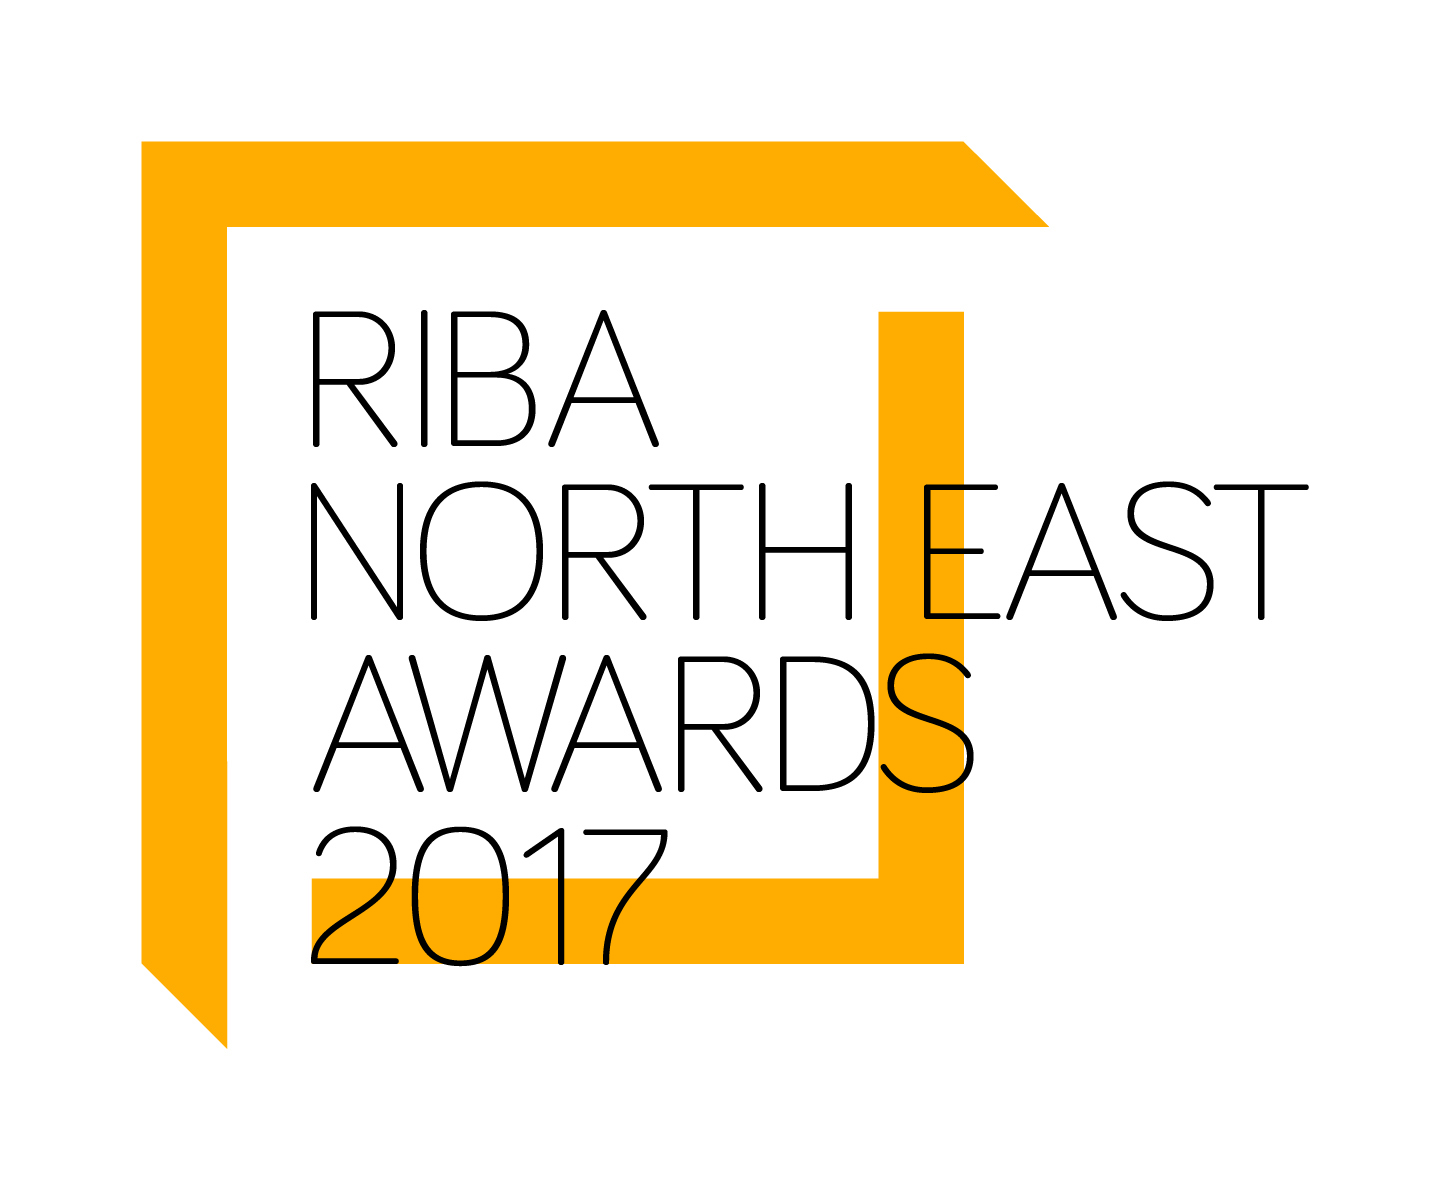 RIBA North East 2017 Awards Logo